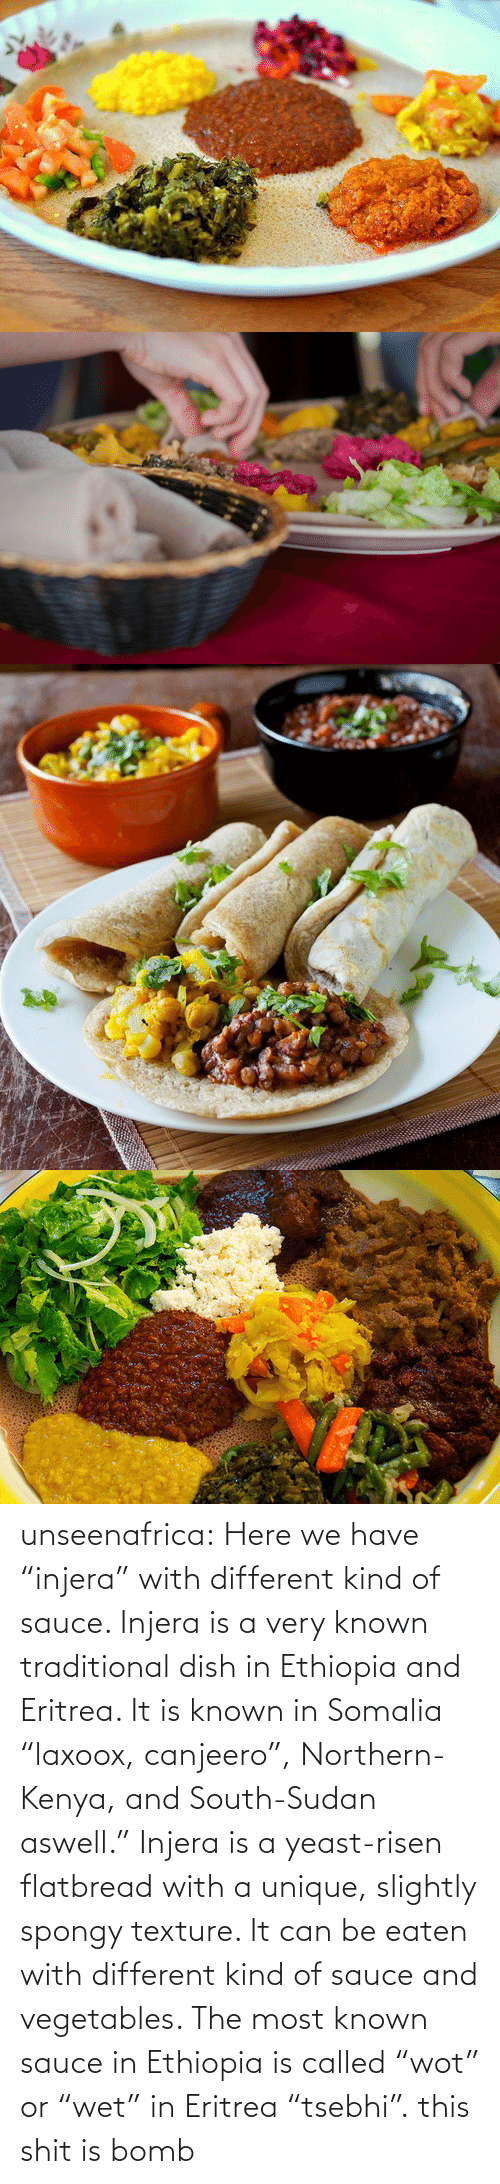 """Be Eaten: unseenafrica:  Here we have """"injera"""" with different kind of sauce. Injera is a very known traditional dish in Ethiopia and Eritrea. It is known in Somalia """"laxoox, canjeero"""", Northern-Kenya, and South-Sudan aswell."""" Injera is a yeast-risen flatbread with a unique, slightly spongy texture. It can be eaten with different kind of sauce and vegetables. The most known sauce in Ethiopia is called """"wot"""" or """"wet"""" in Eritrea """"tsebhi"""".  this shit is bomb"""